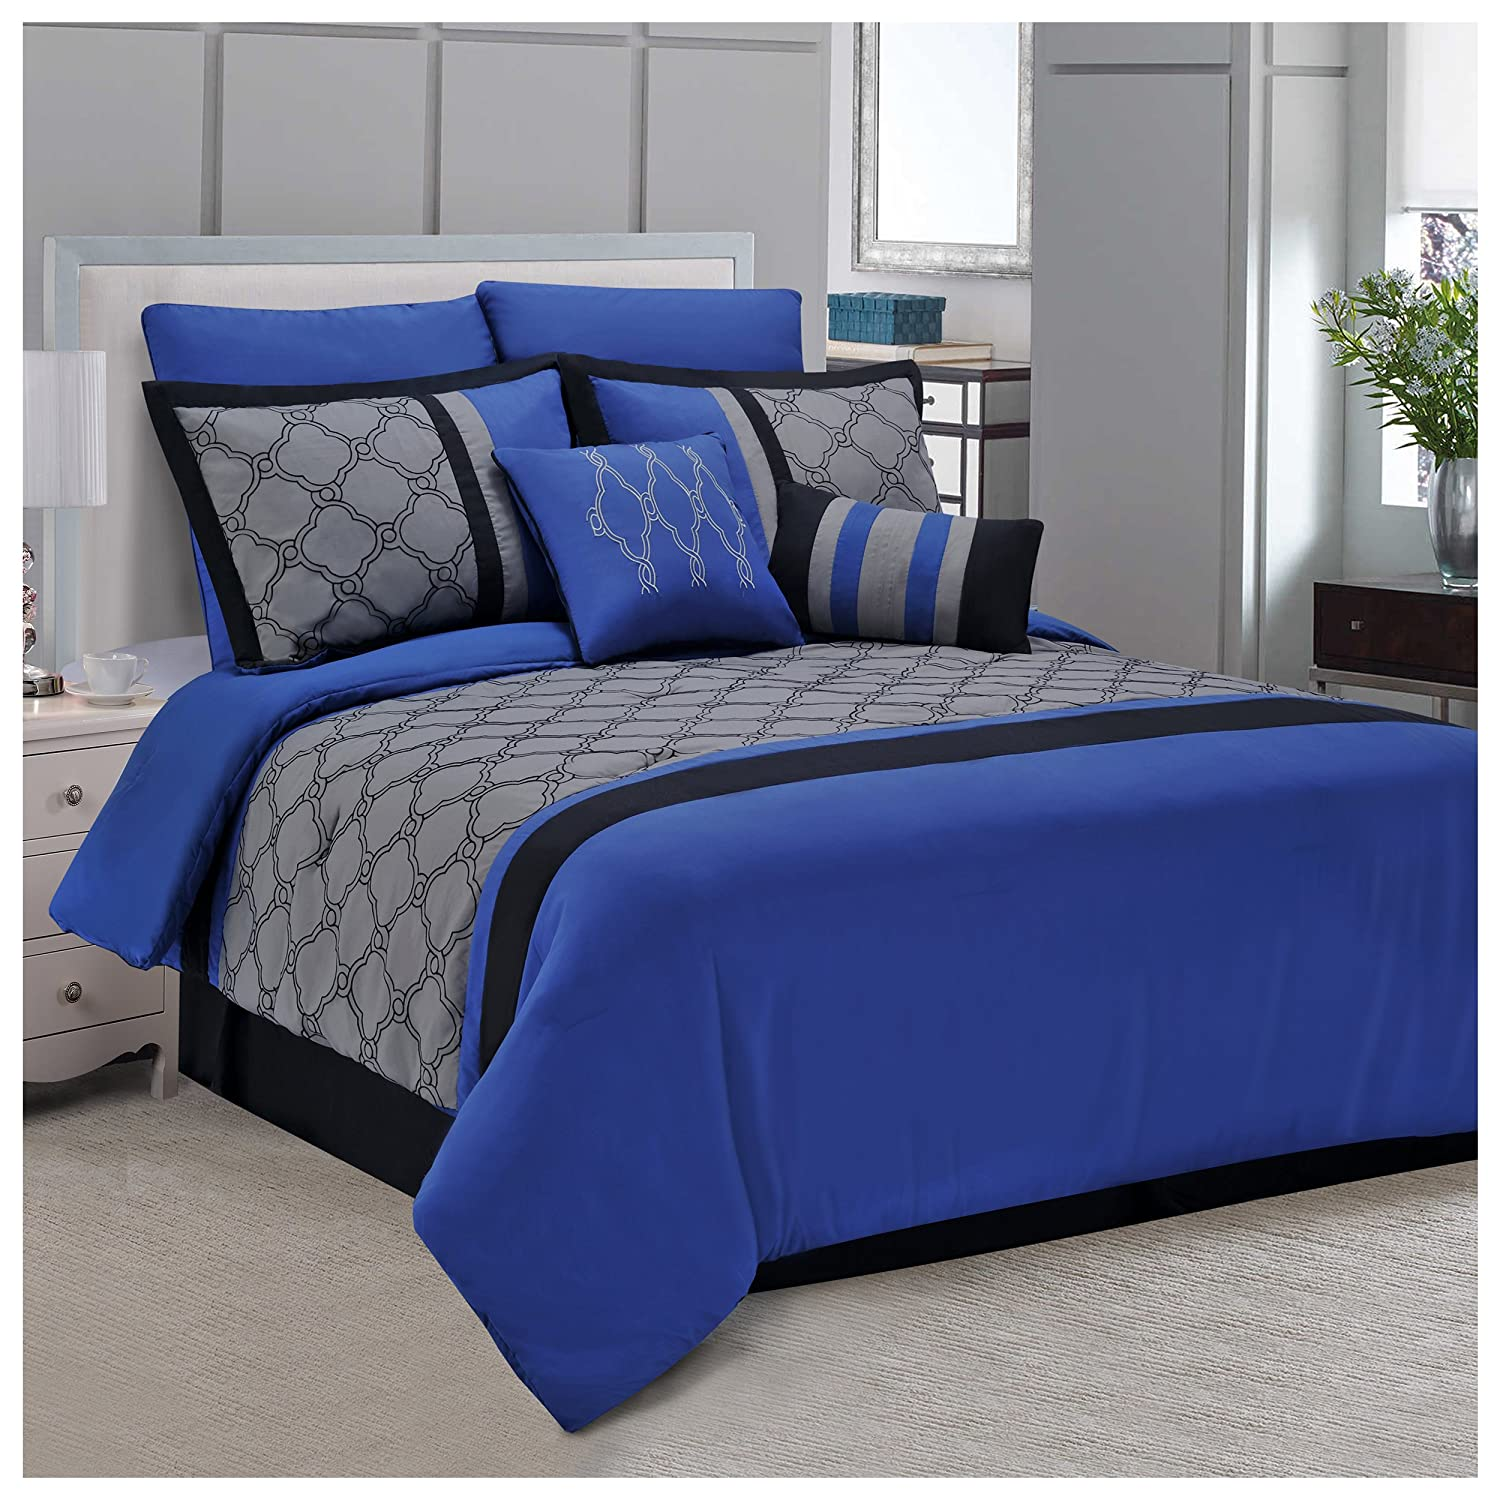 Superior Maxfield 8 Piece Embroidered Comforter Set Blue, Queen MAXFIELD 8PC QNBL